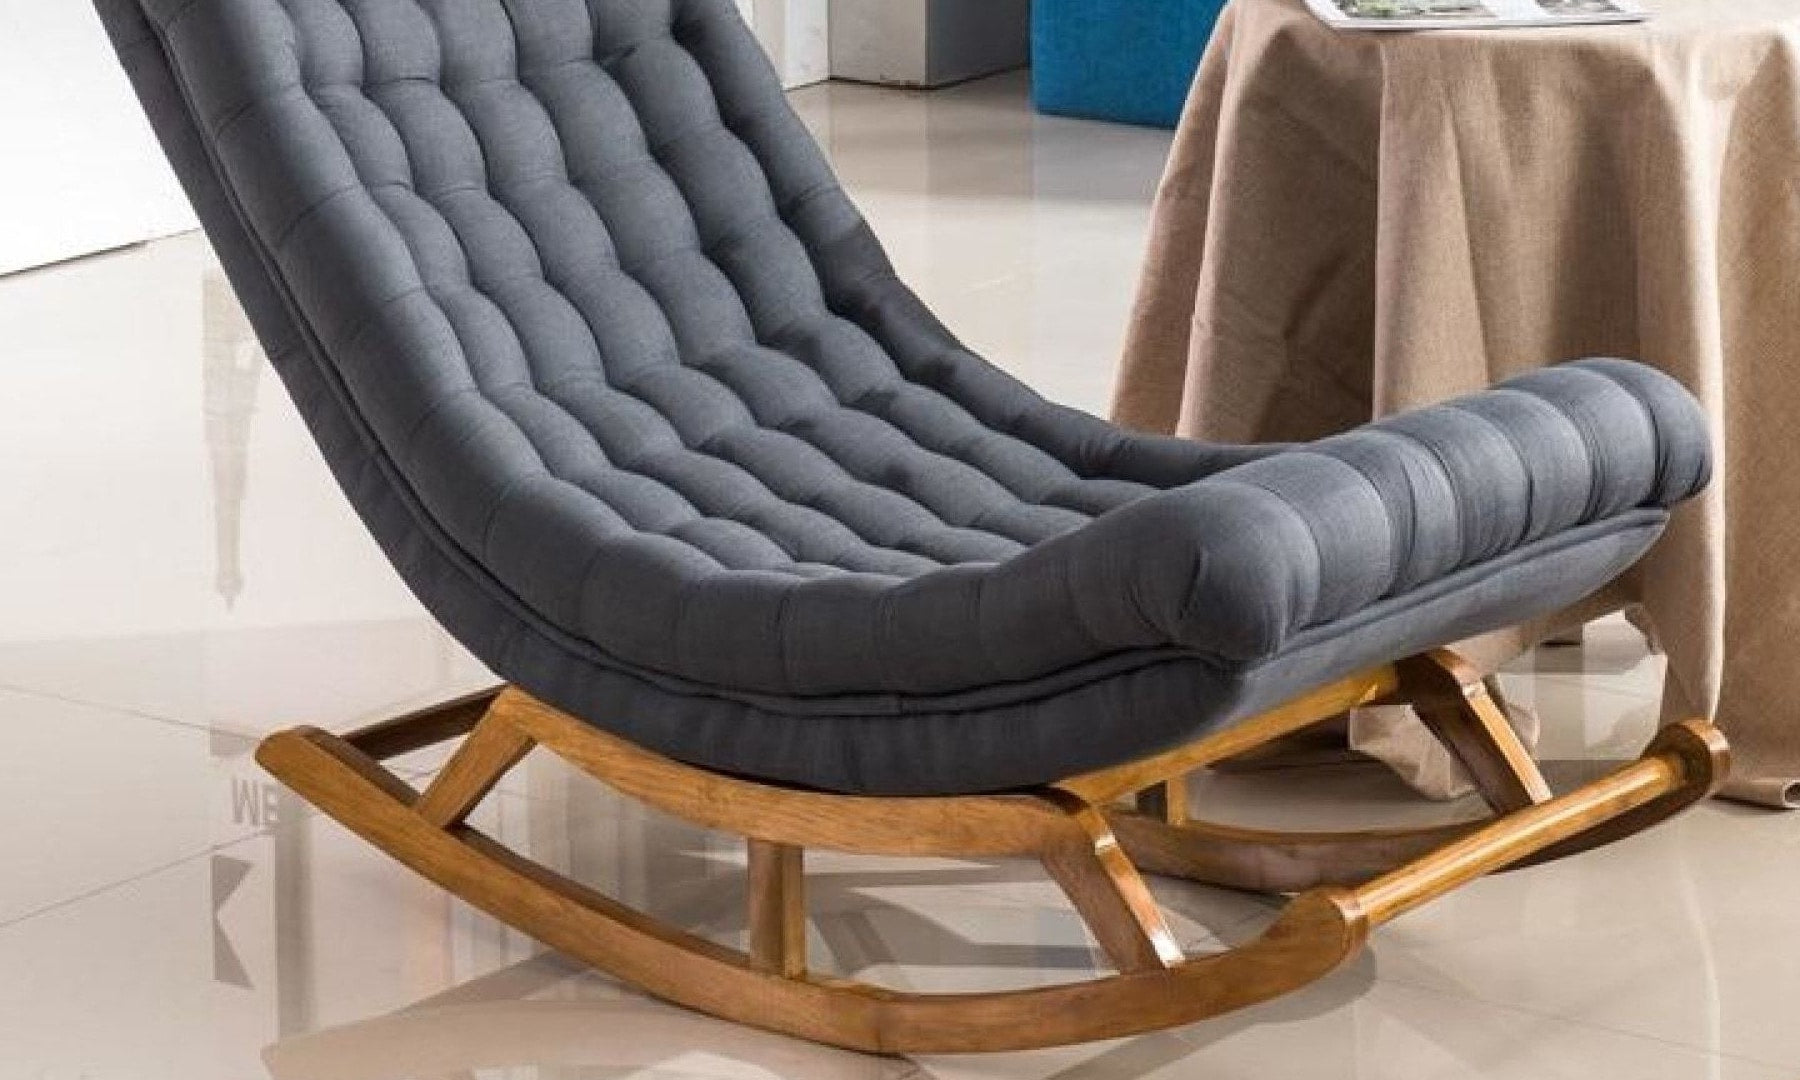 Modern Design Rocking Lounge Chair Fabric Upholstery and Wood For Home Furniture Living Room Adult Luxury 3c0c1874 7955 4095 83cf 75a1d